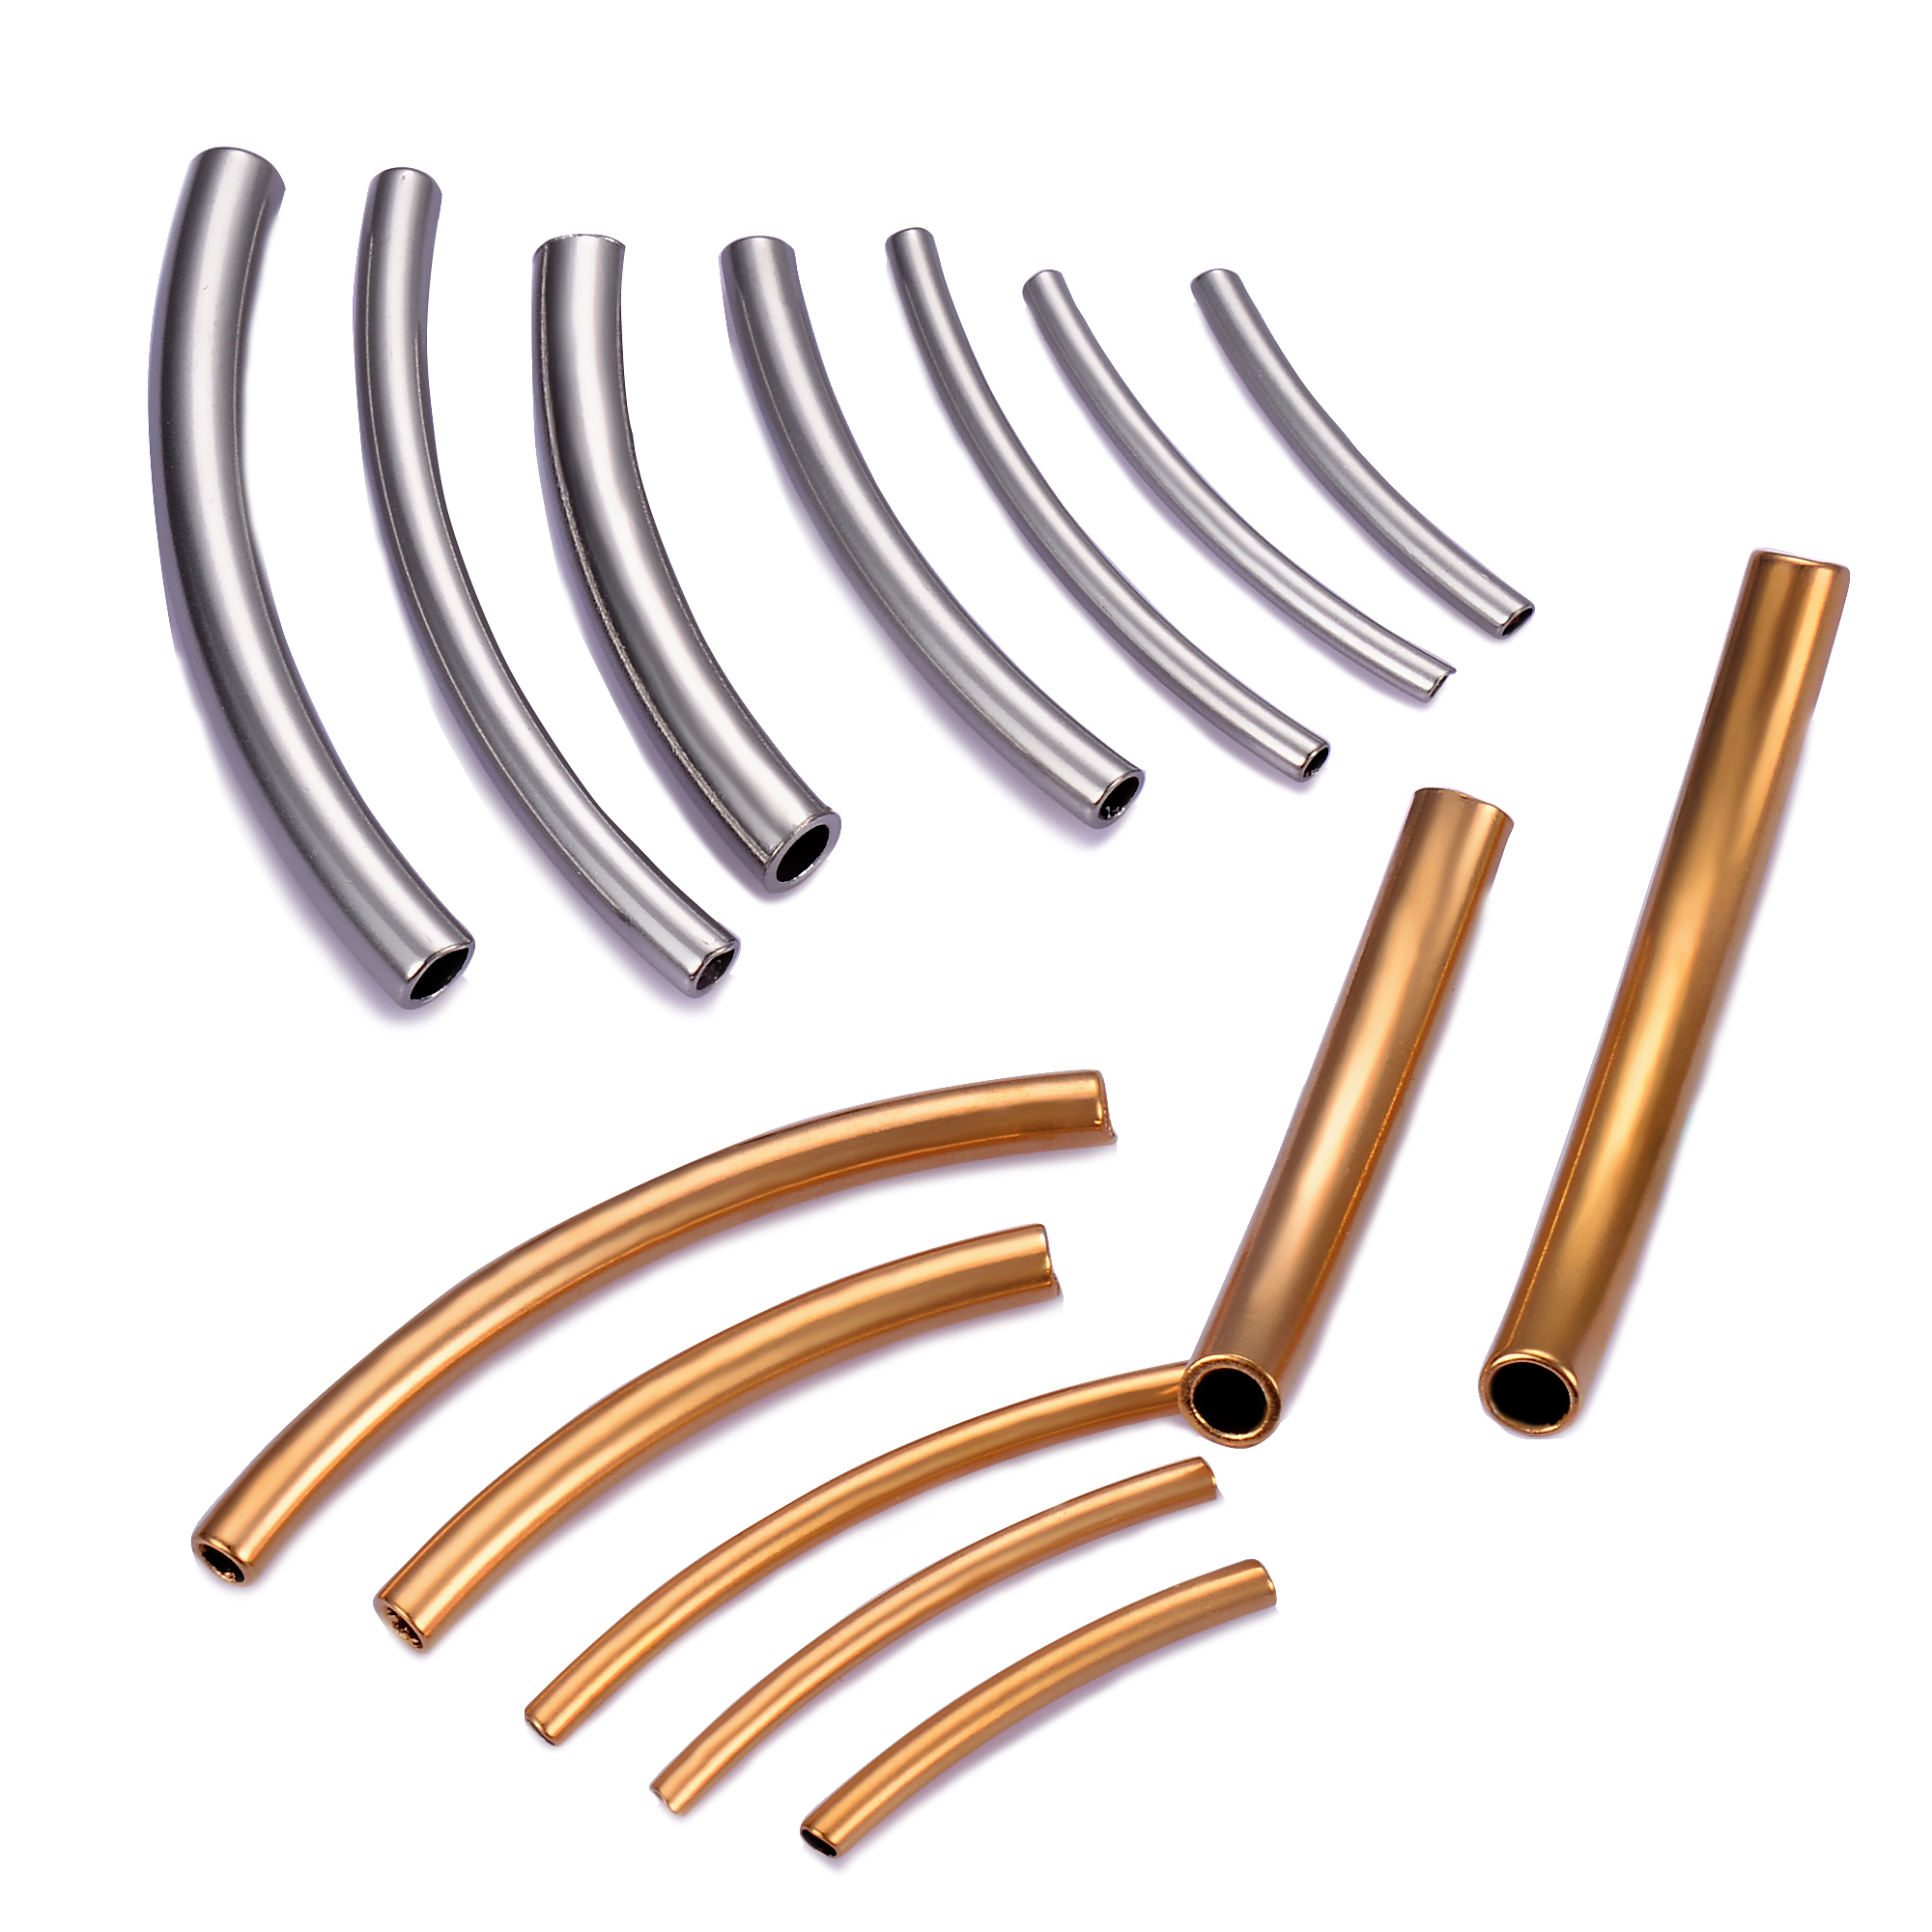 10 Pcs Stainless Steel Curved Tube Spacer Beads Connector Jewelry Findings For Bracelets Necklace DIY Jewelry Making Accessories